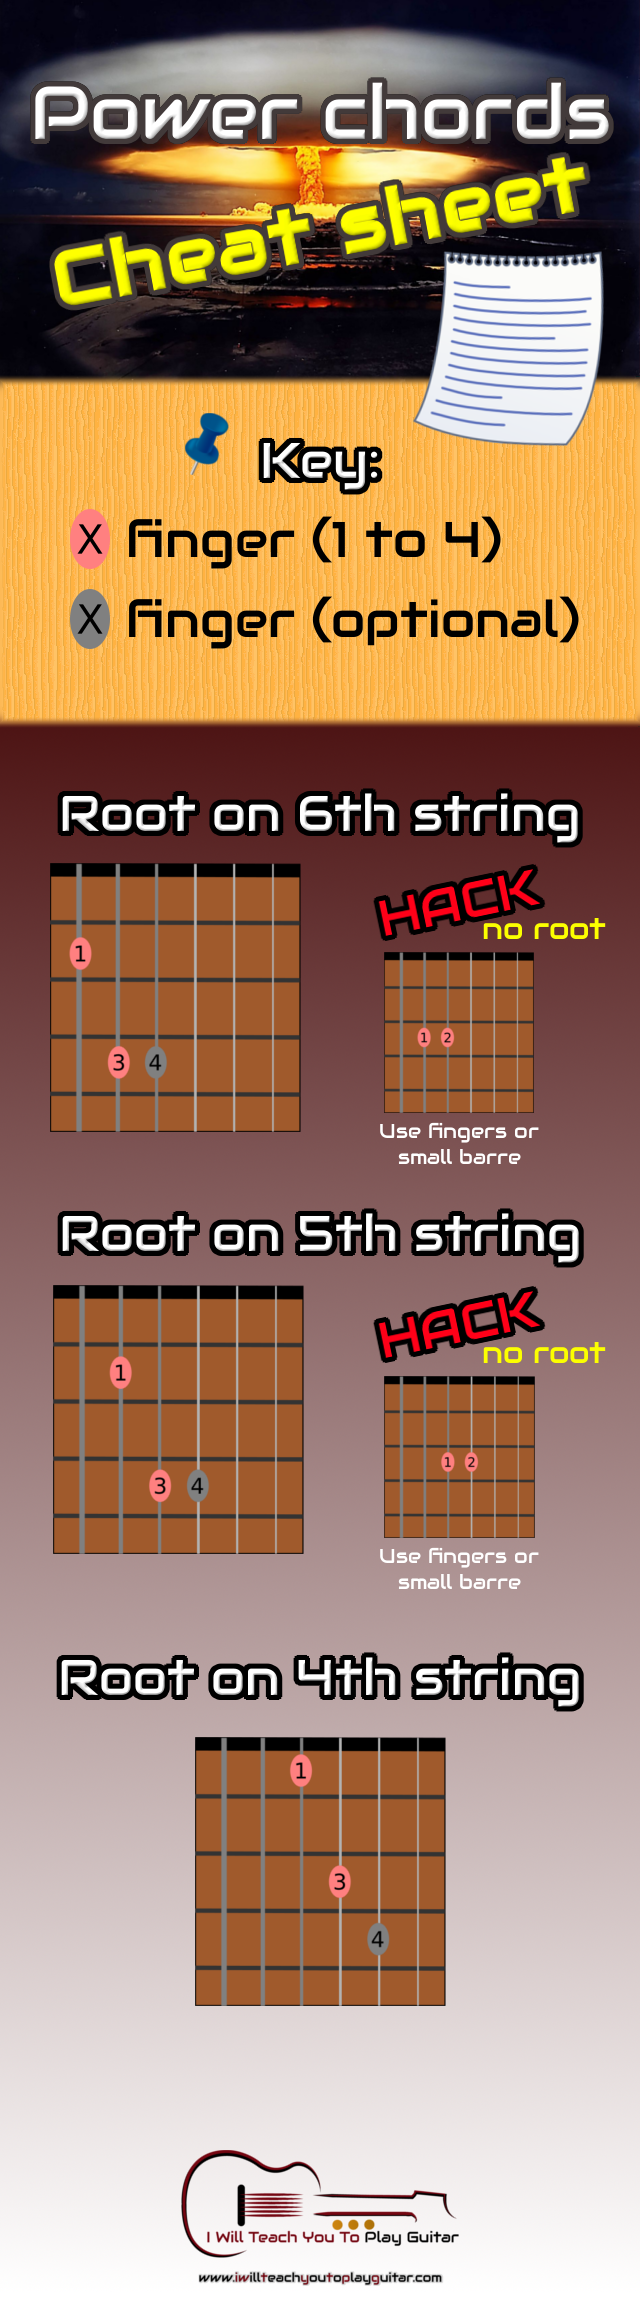 I Will Teach You To Play Guitar Resources